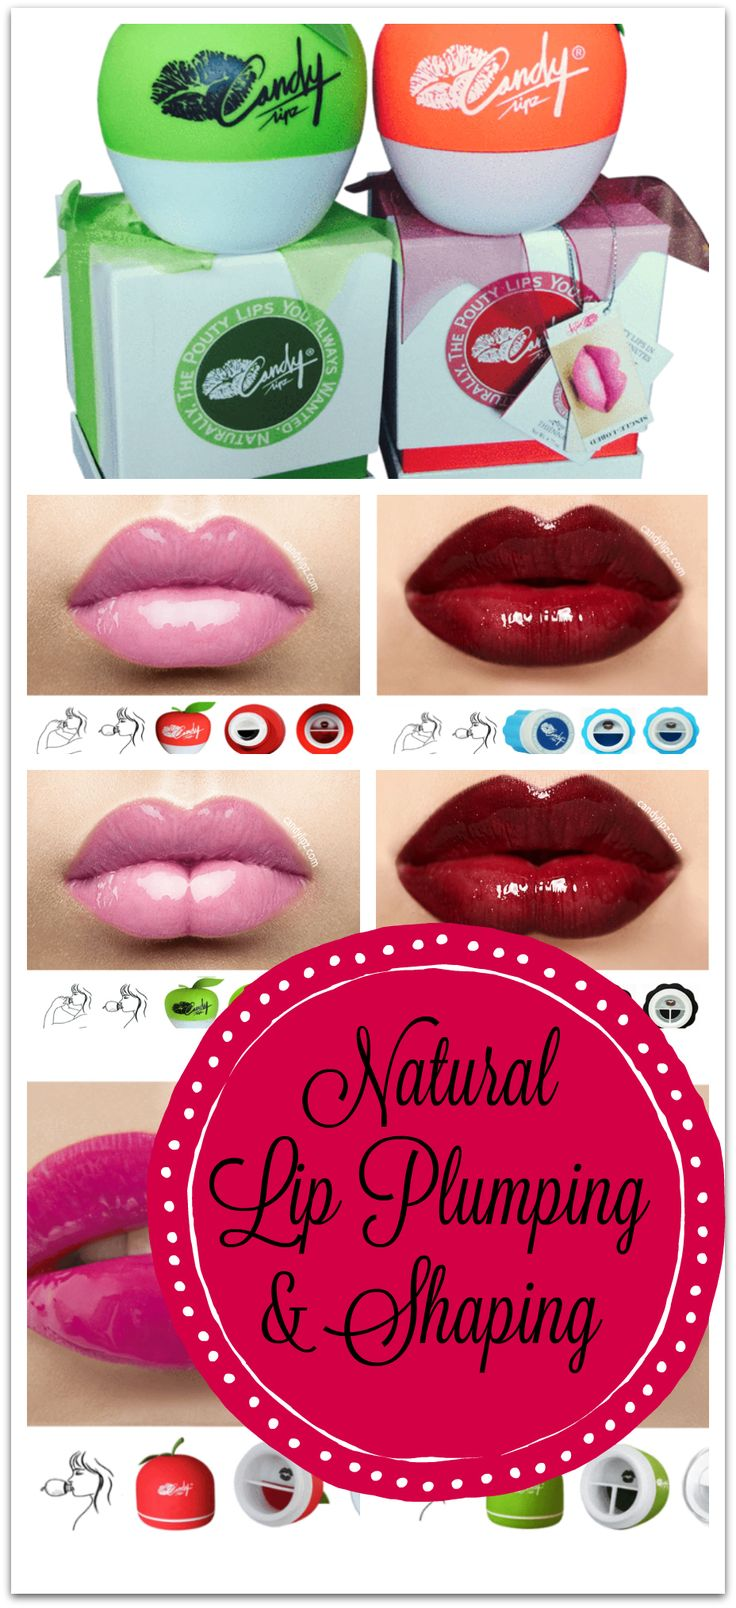 O-PLUMP Intuitive Lip Plumper with Goji Berry-C Complex nordstrom Product: by Smashbox #8